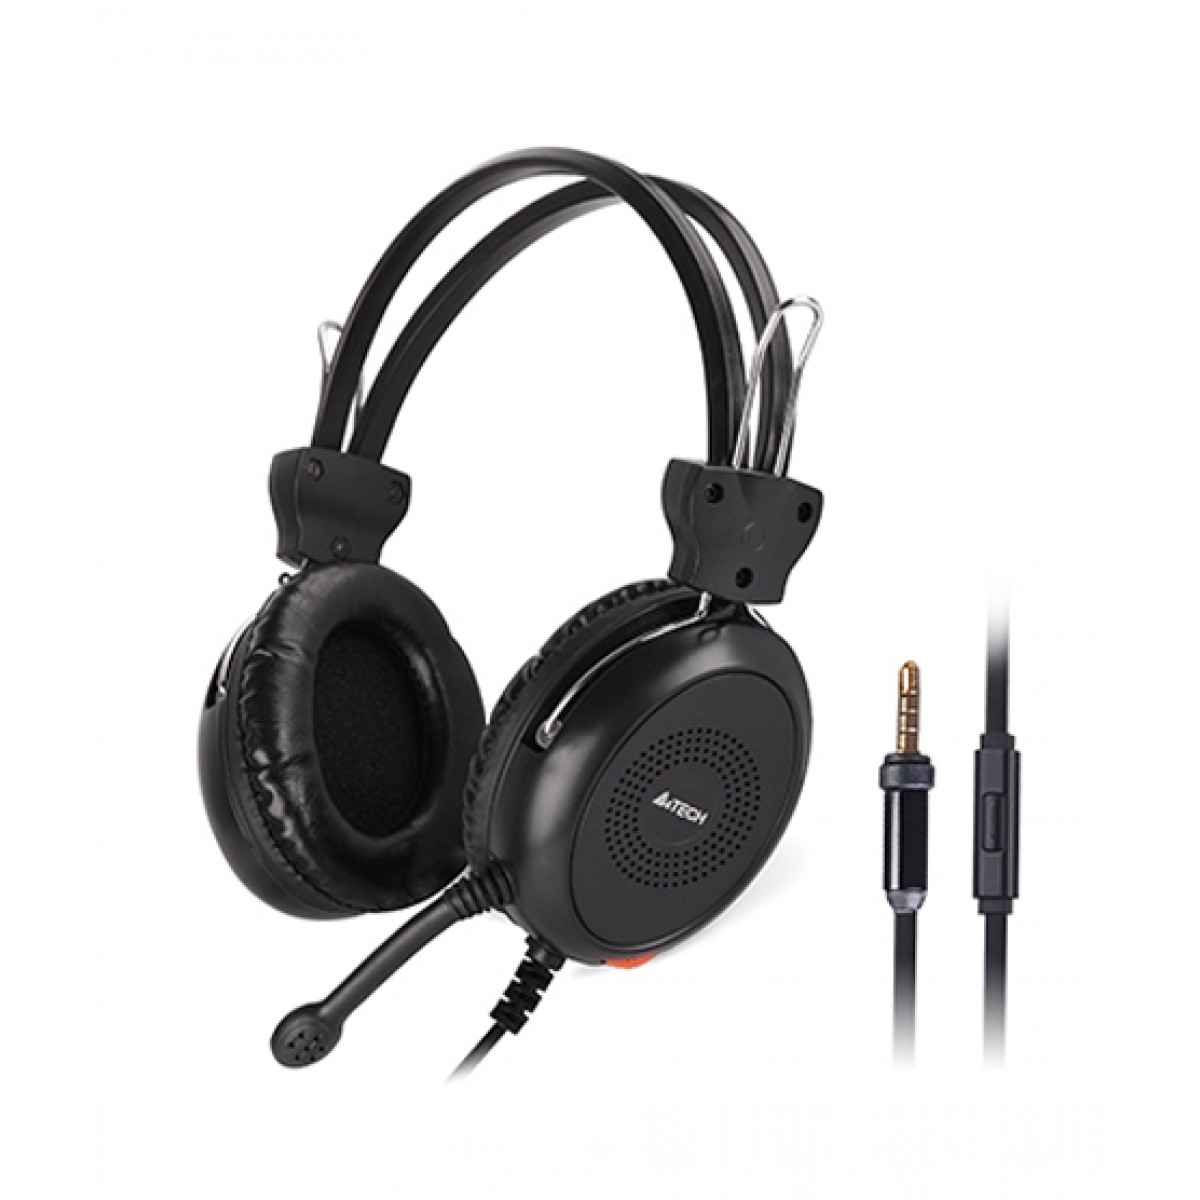 HEADSET A4TECH HS-30I +VOLUM CONTROL+ 4PIN STEREO PLUG FOR SMART PHONE AND NOTBOOK ,Headphones & Mics